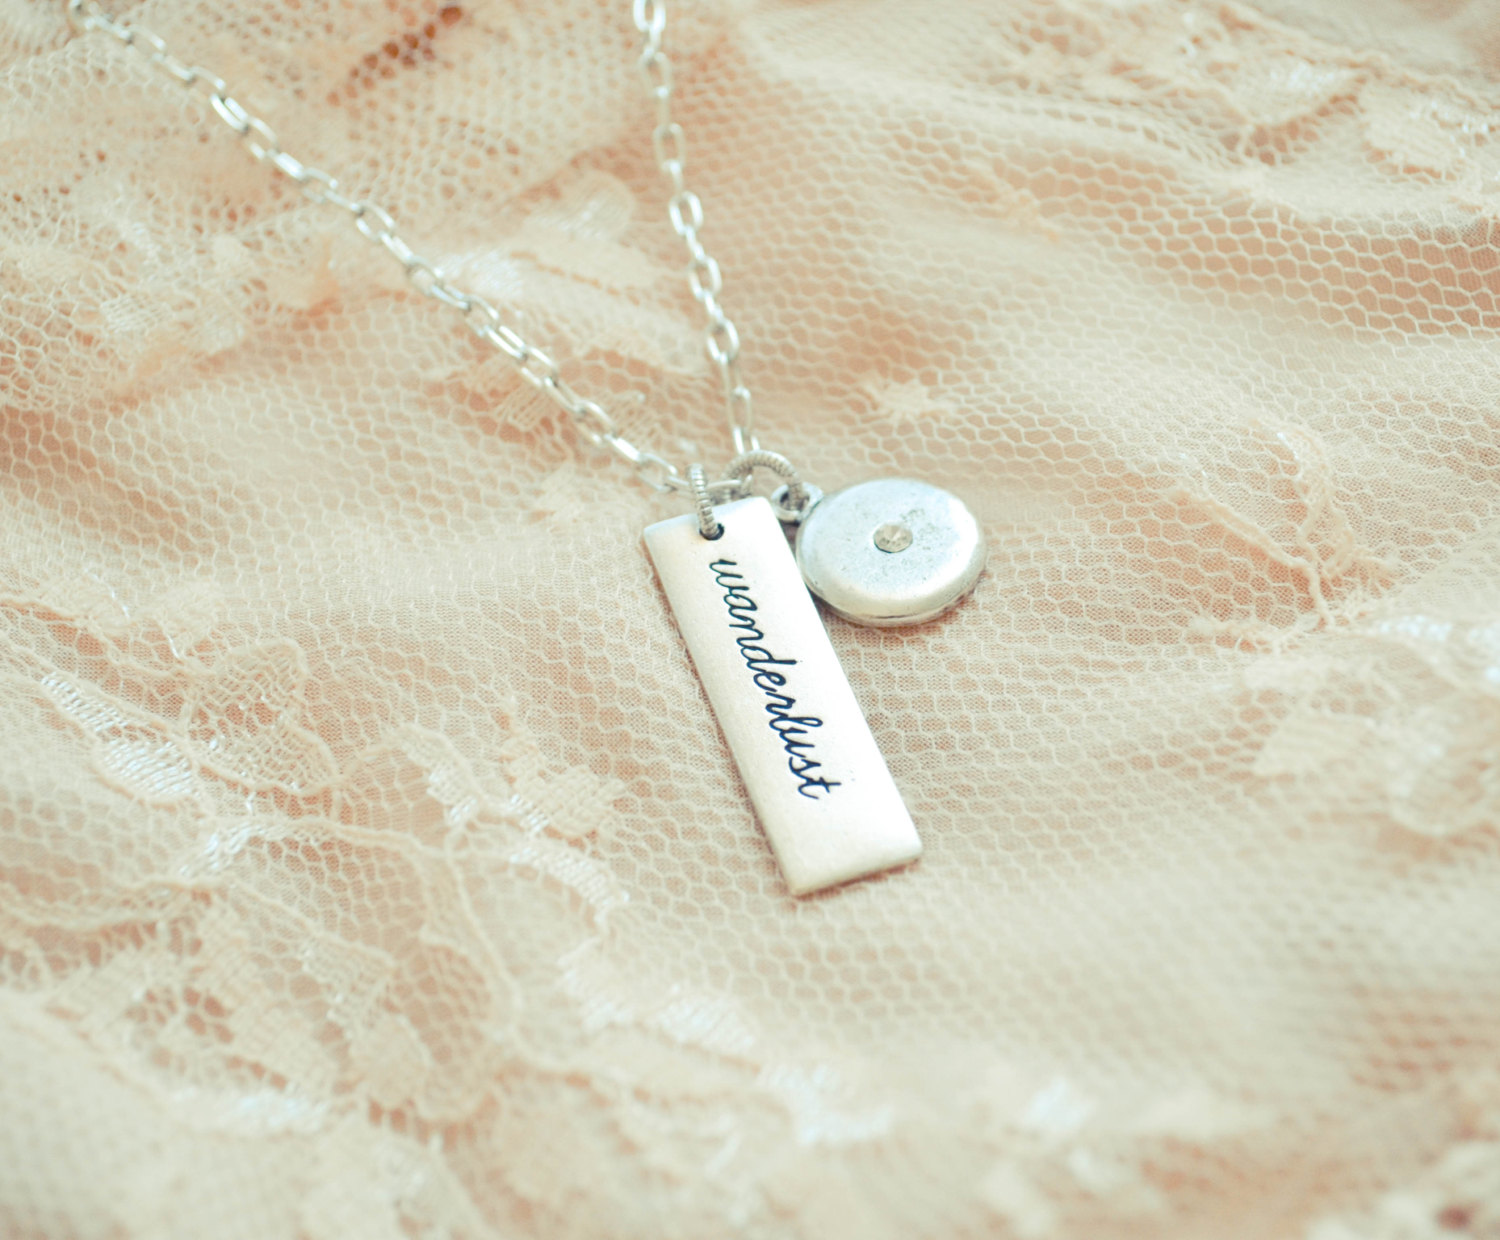 wanderlust necklace with heart | gifts bridesmaids travel | http://emmalinebride.com/gifts/gifts-bridesmaids-travel